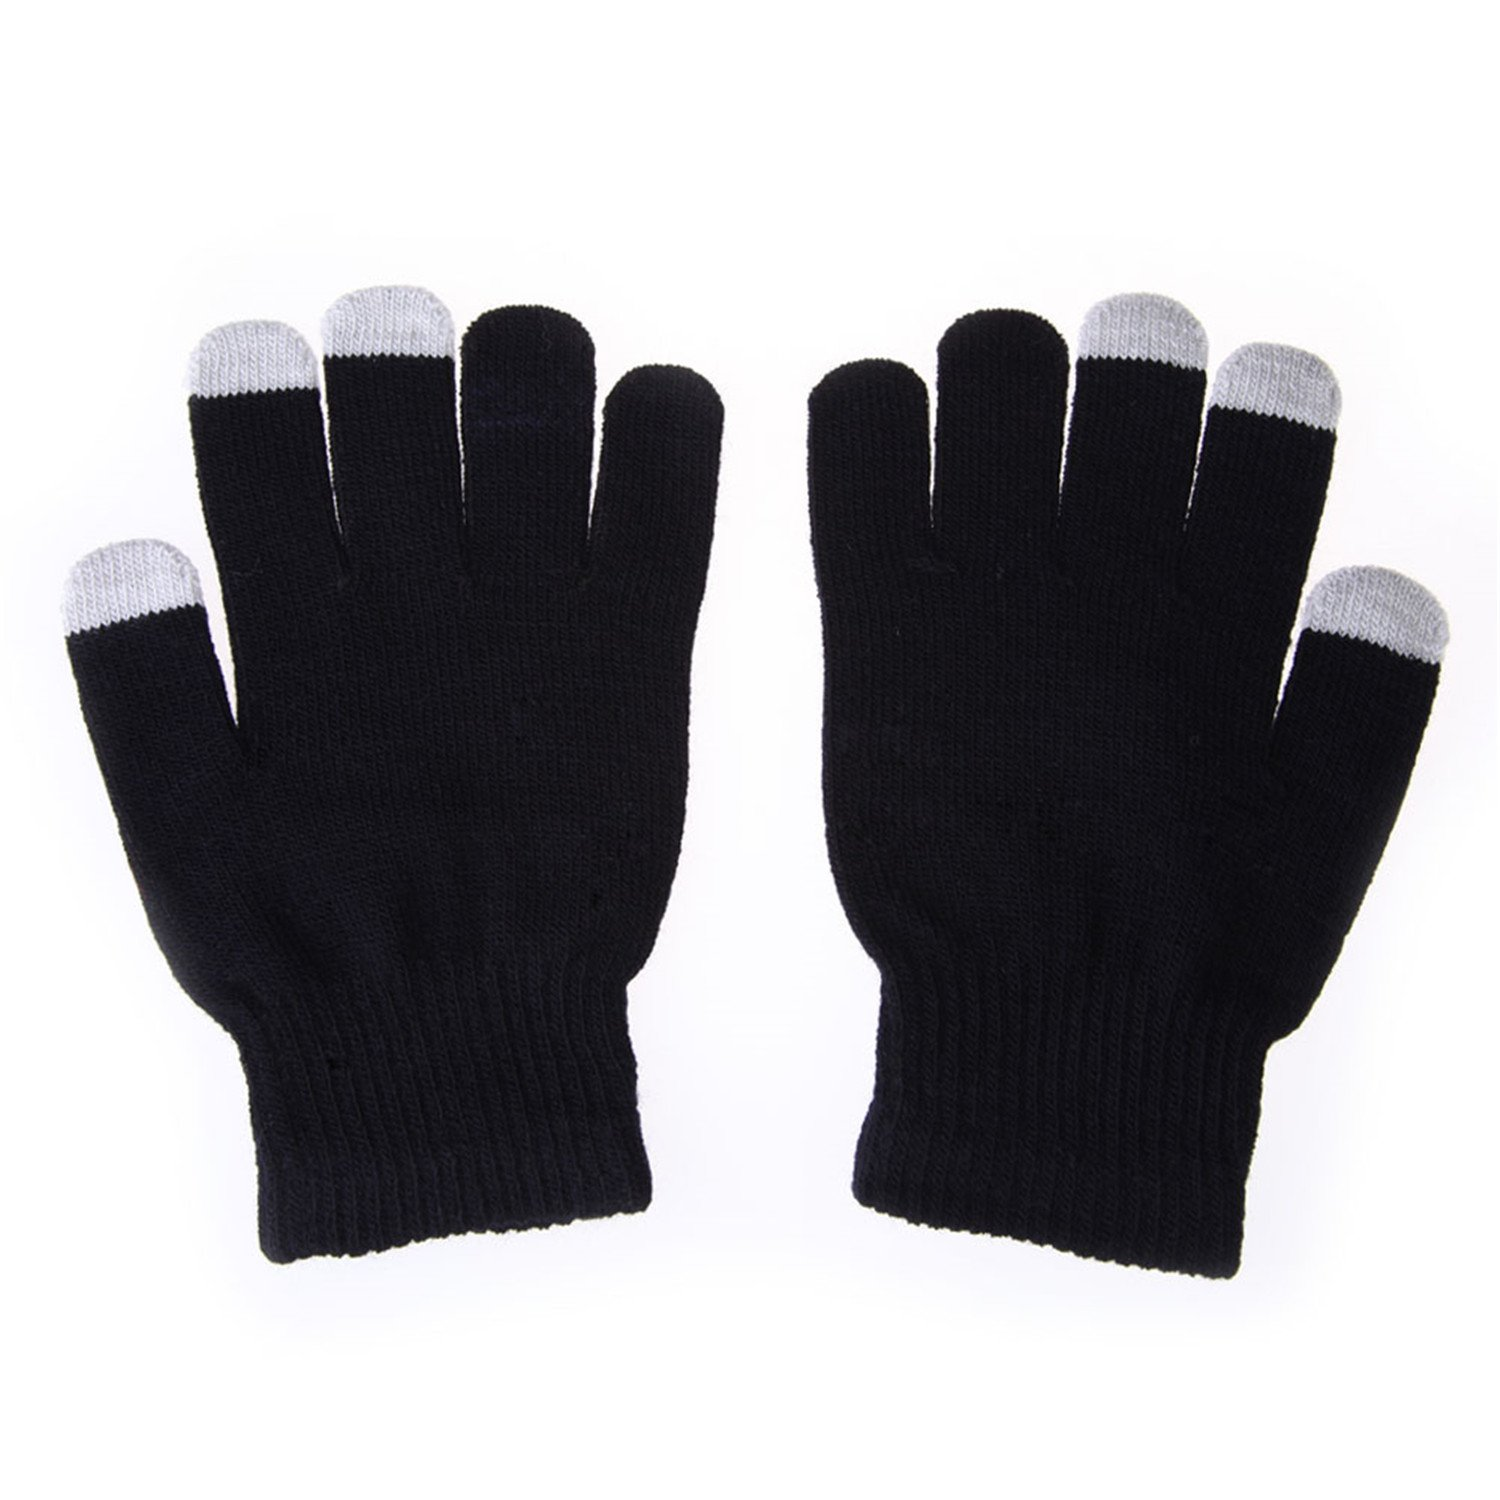 Better Annie New Magic Touch Screen Gloves Smartphone Texting Stretch Adult One Size Winter Warmer Knit Hot style 7